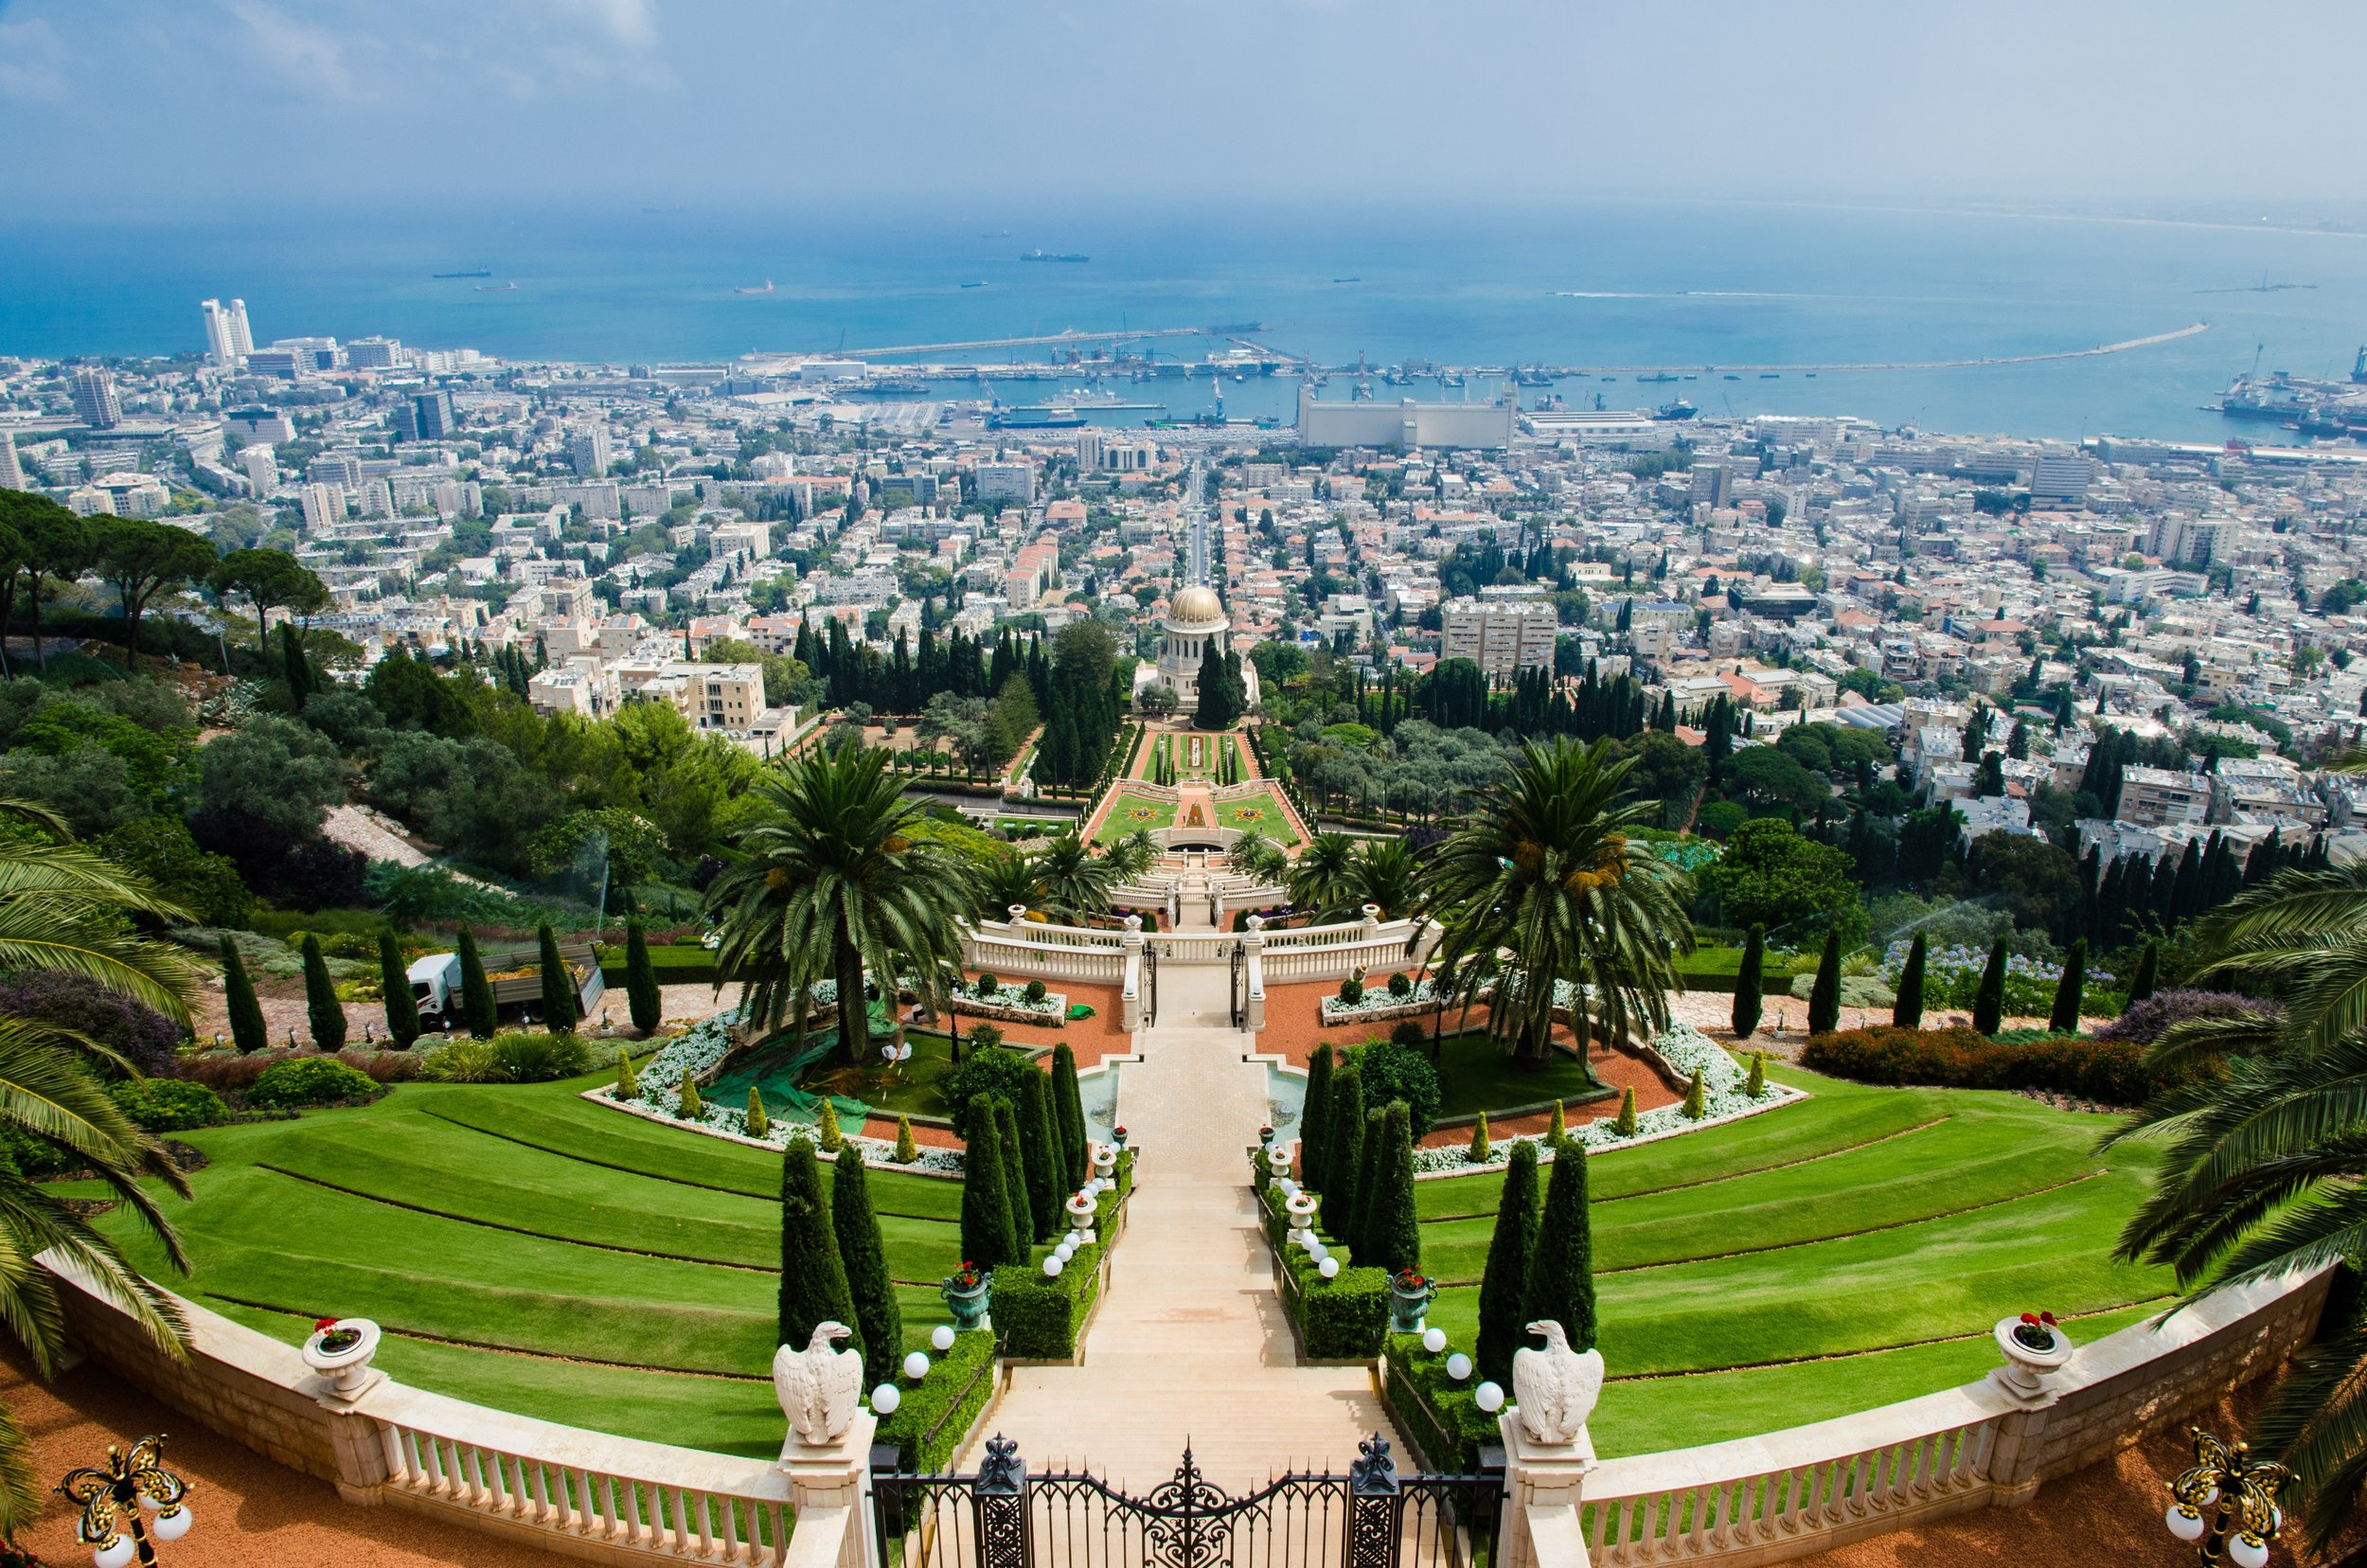 architecture-bahai-gardens-buildings-190339.jpg